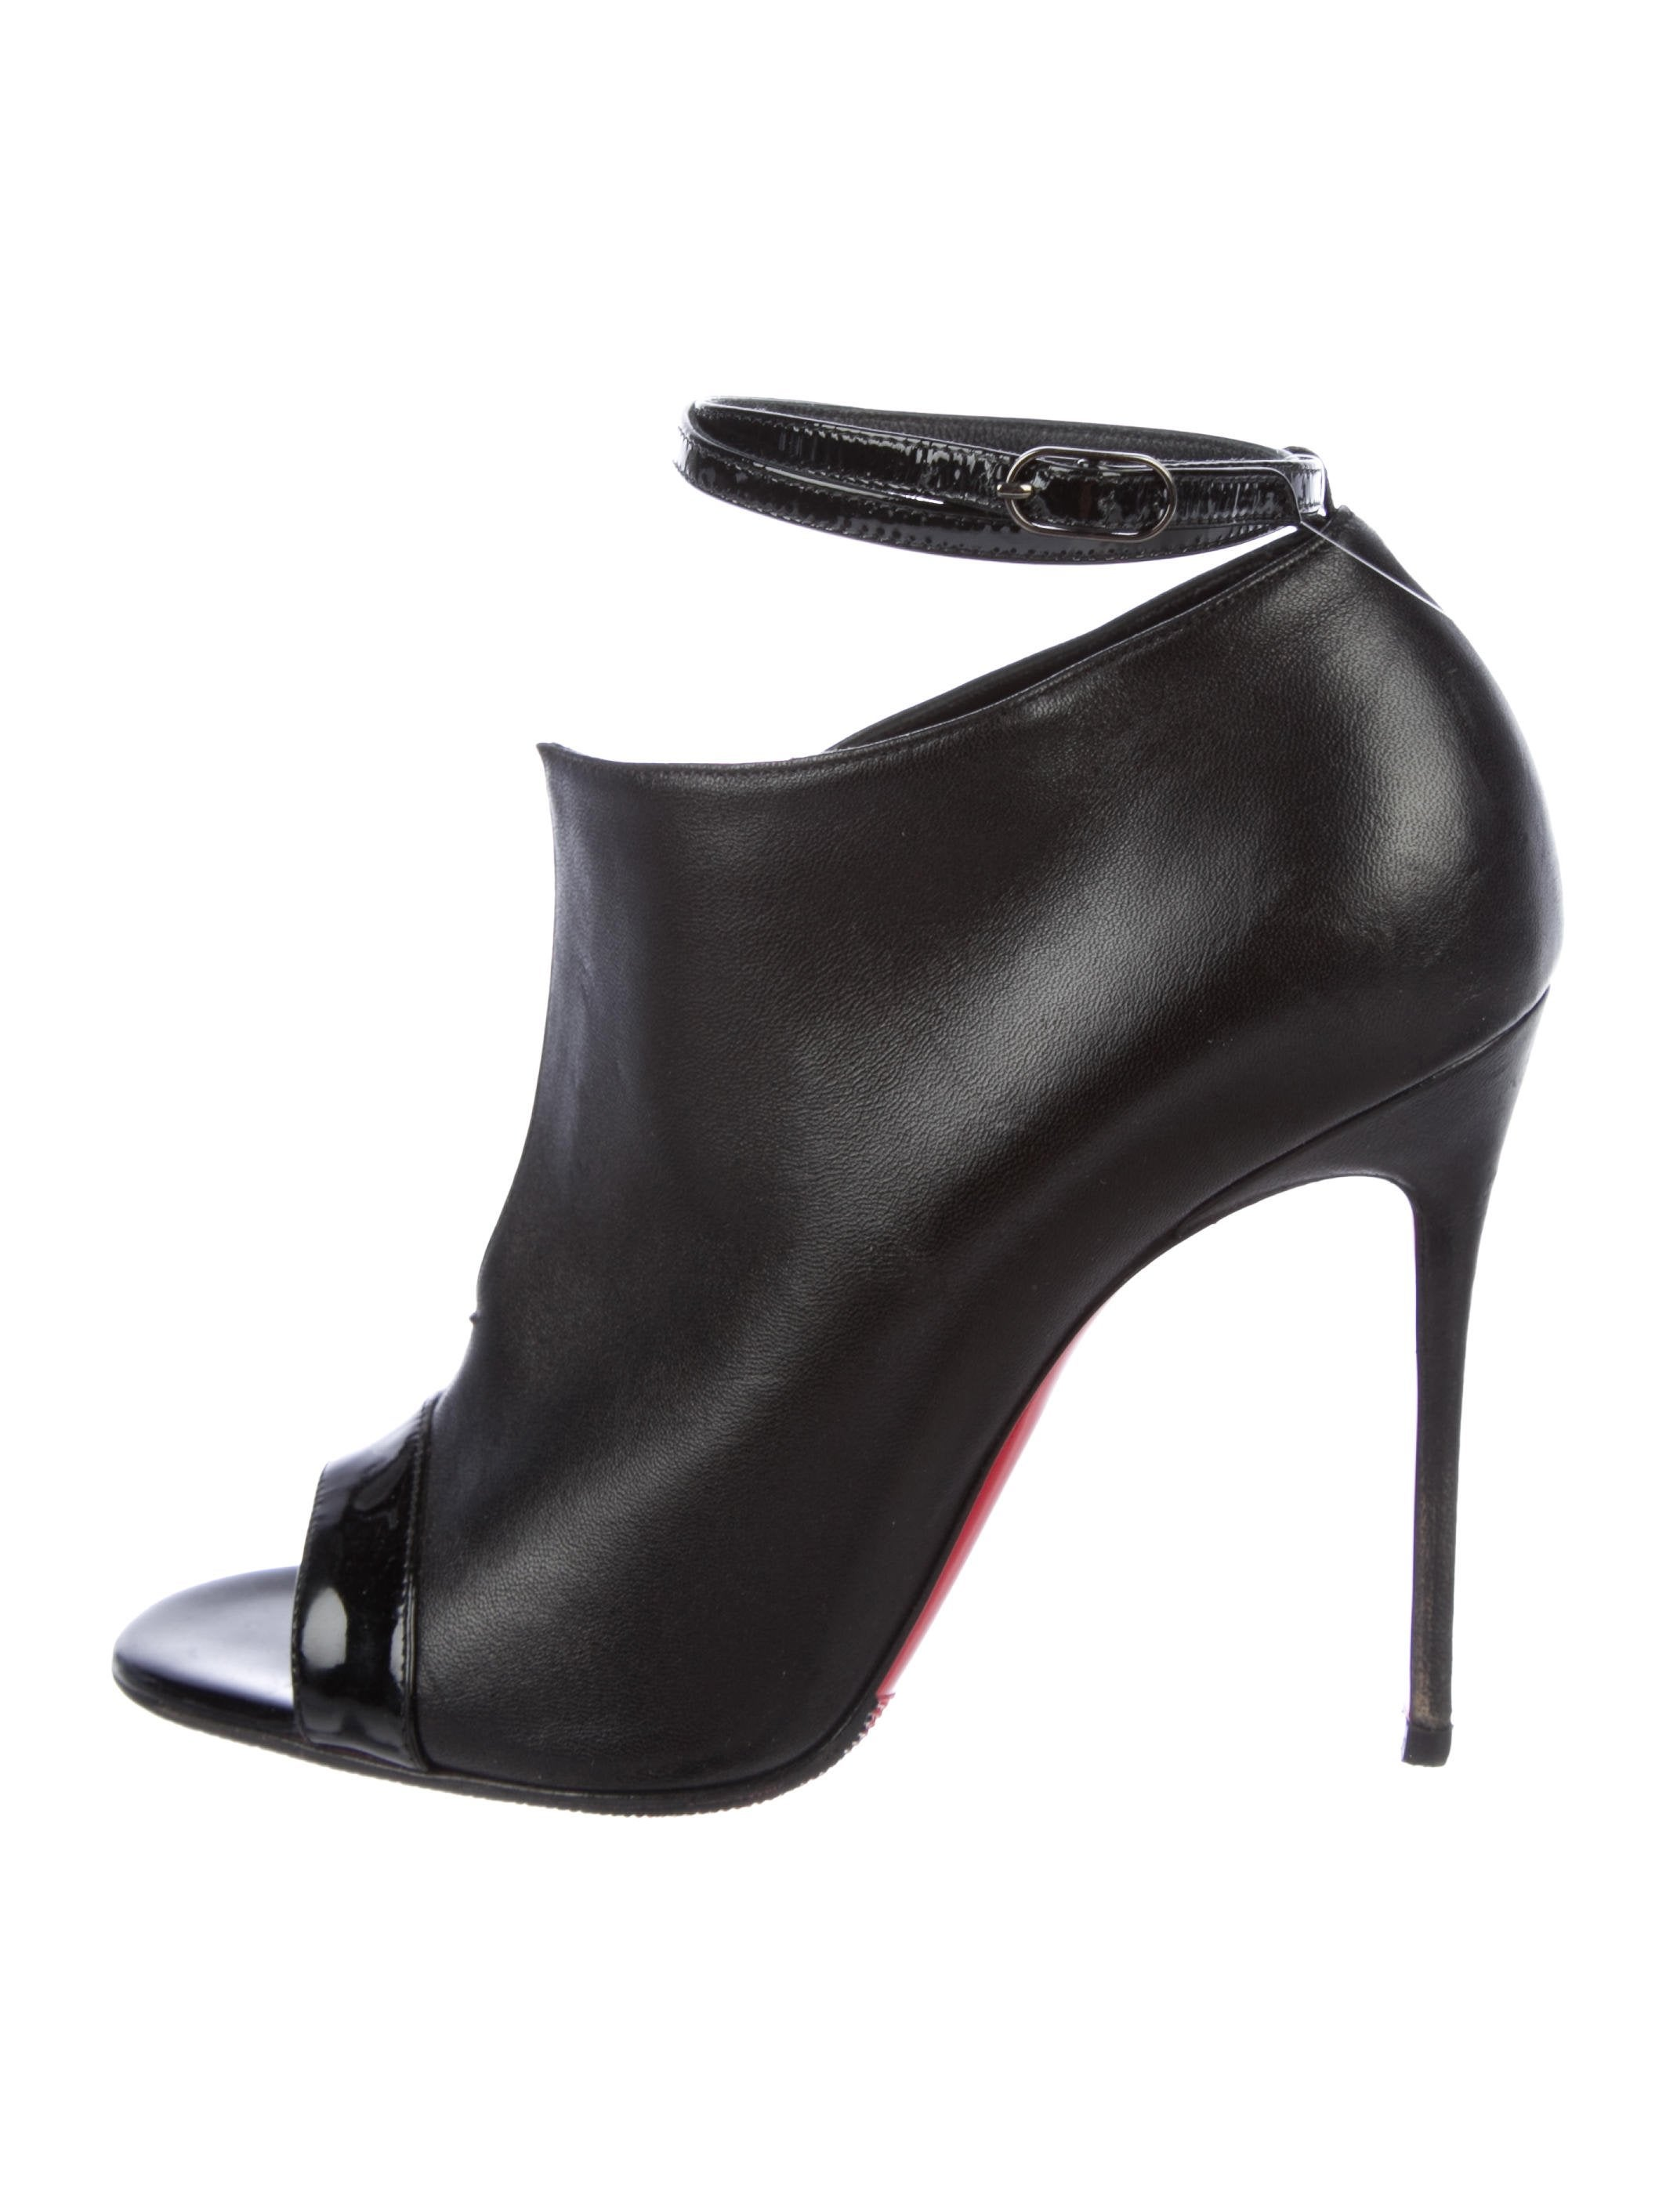 bedee97869b Christian Louboutin Diptic Peep-Toe 100 Booties - Shoes - CHT115362 ...